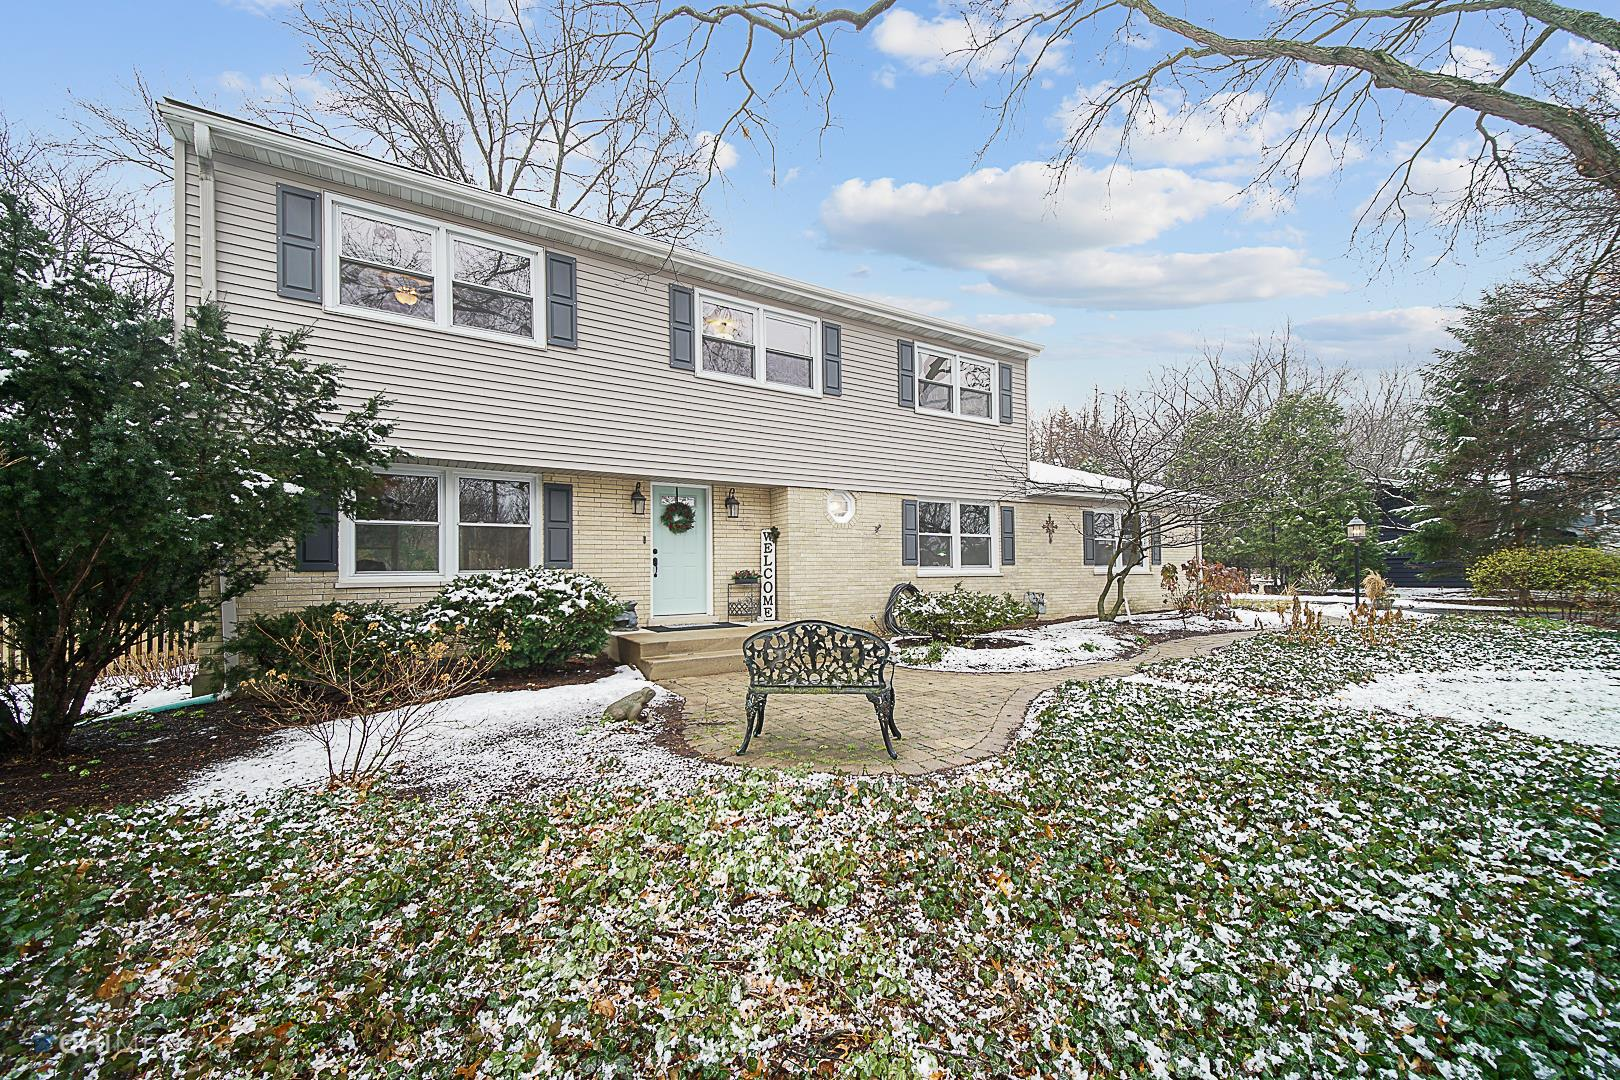 2S237 Burning Trail, Wheaton, IL 60189 - #: 10942257